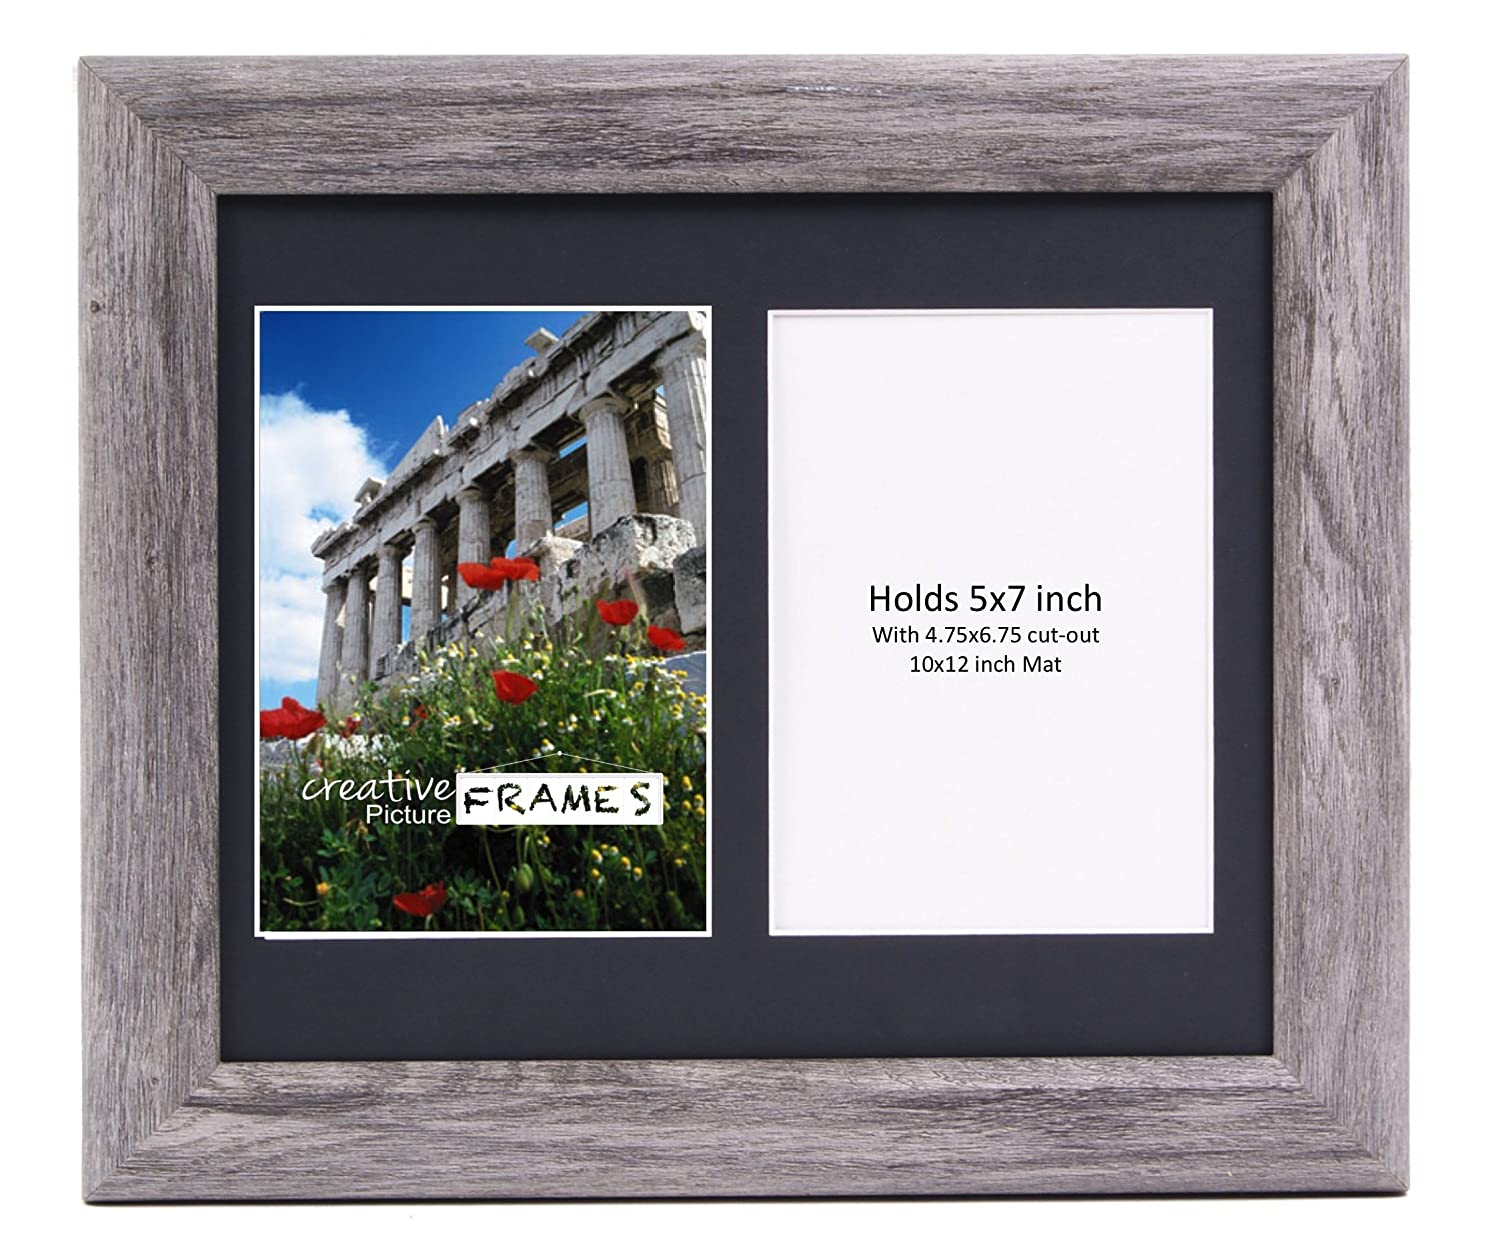 Amazon.com - Creative Picture Frames CreativePF 6 Opening Glass Face ...